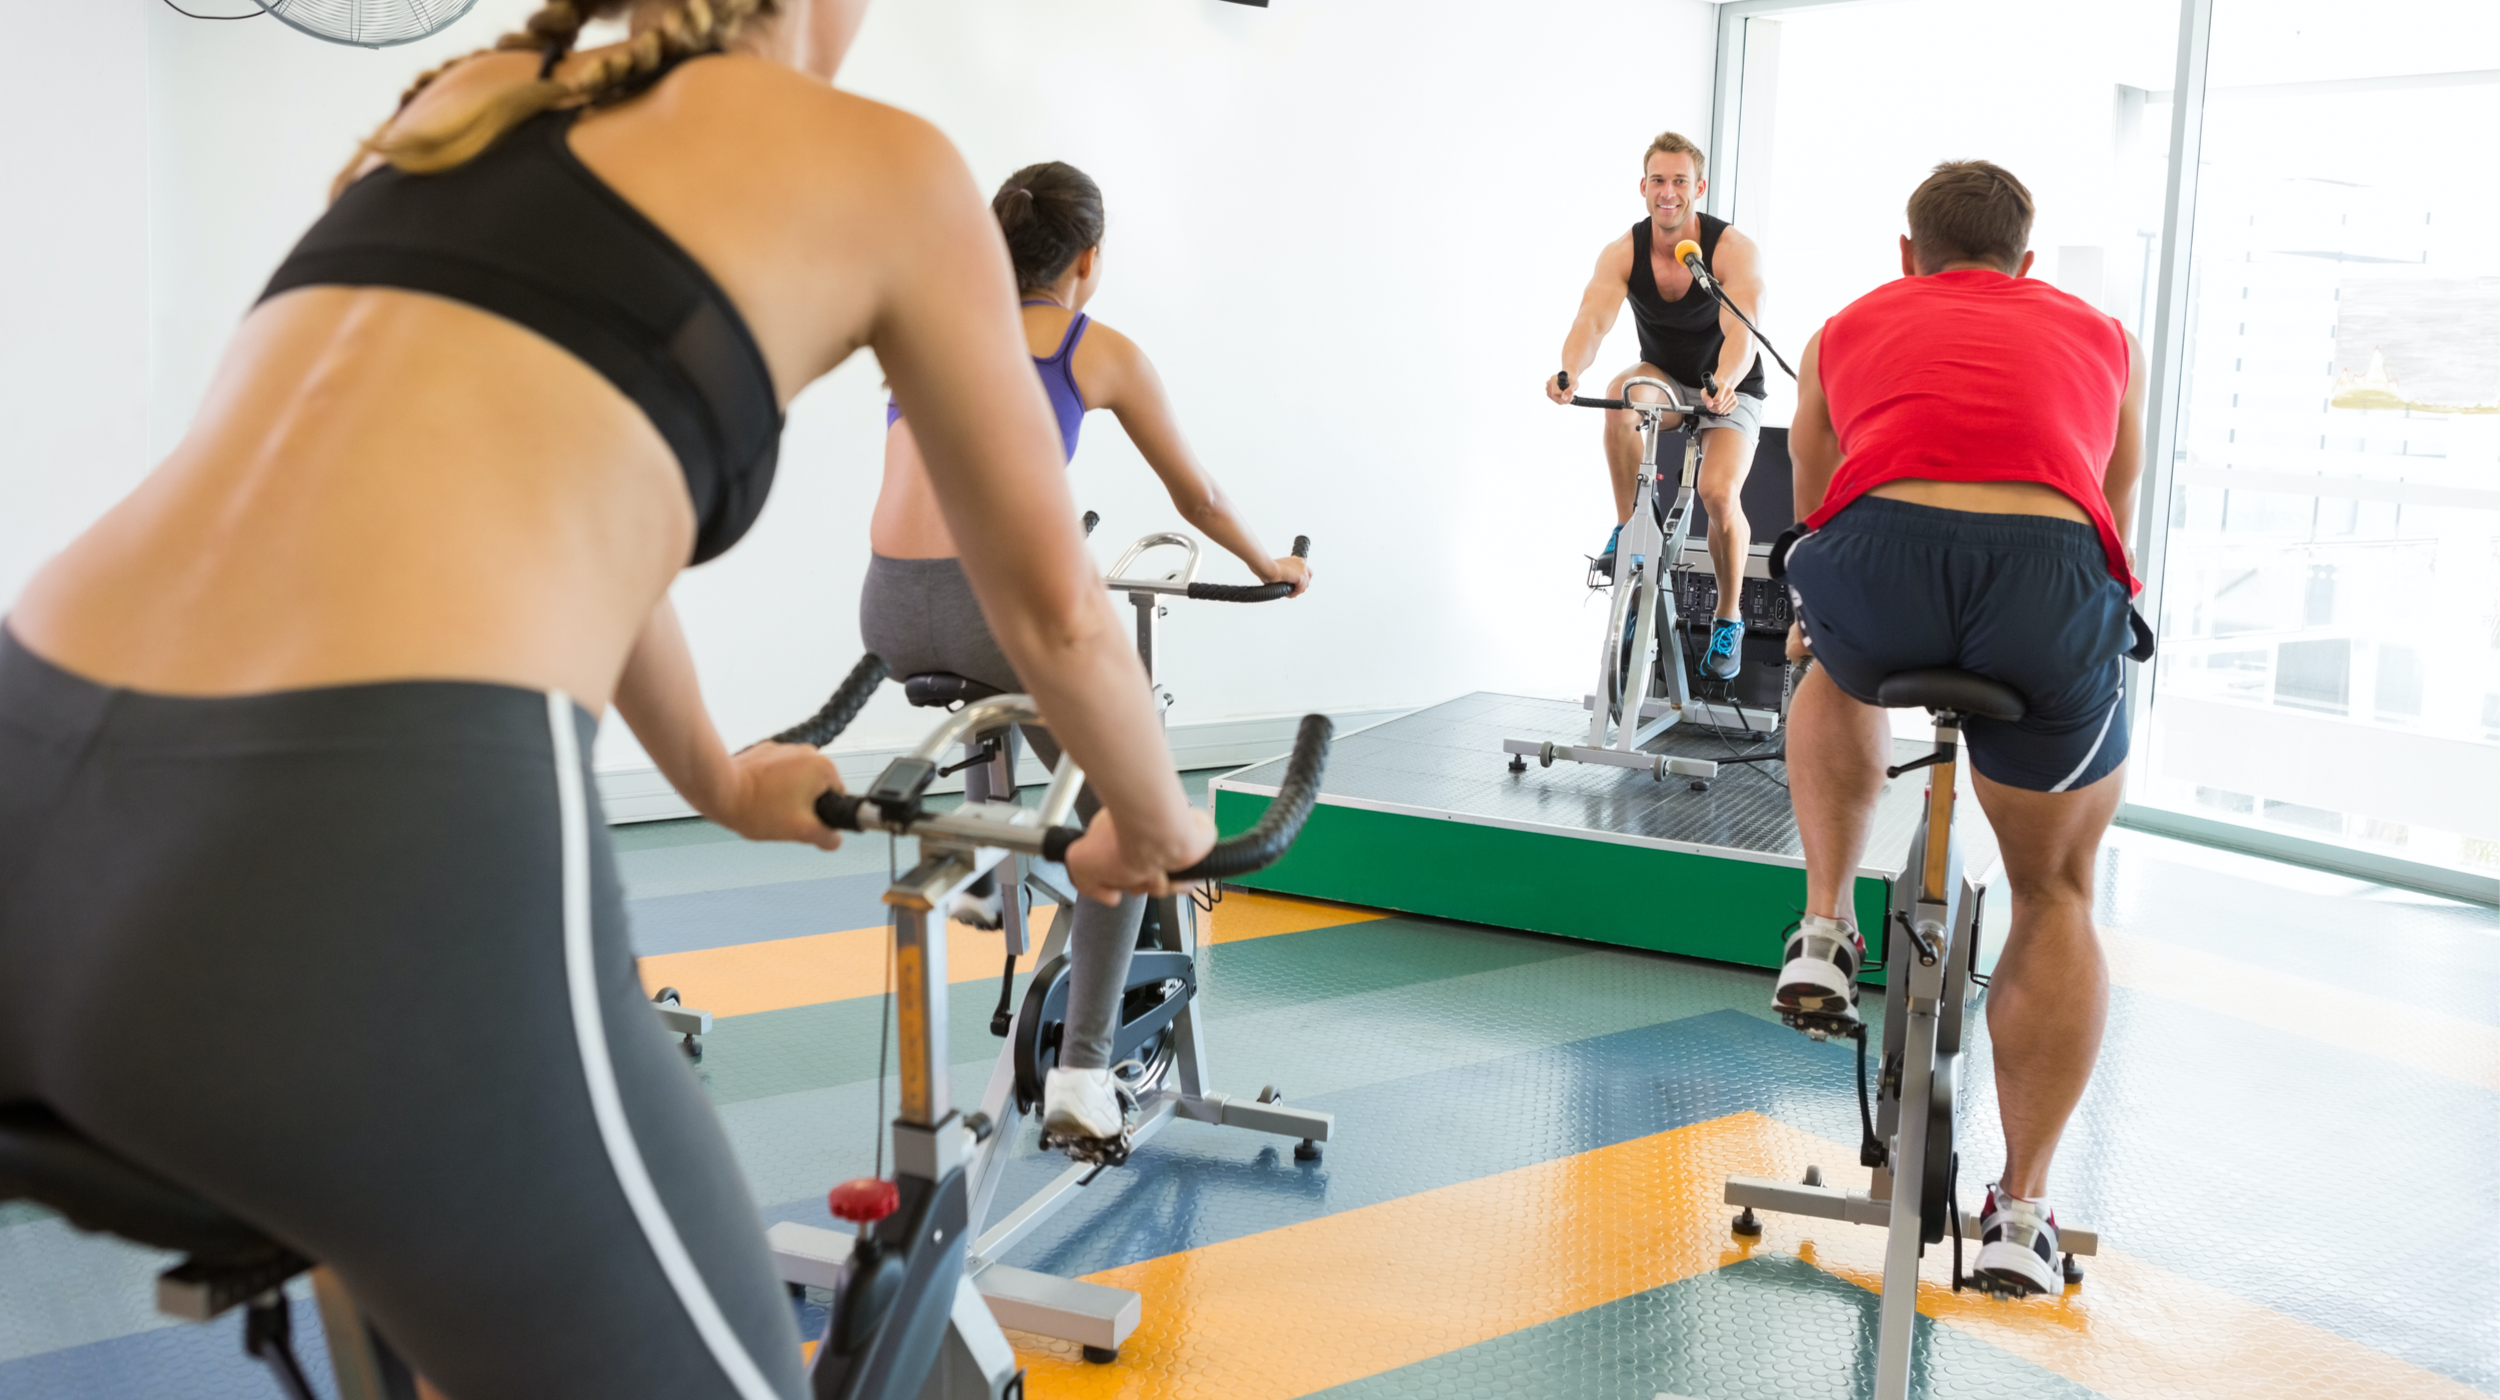 Are Spin Classes Effective for Weight Loss?